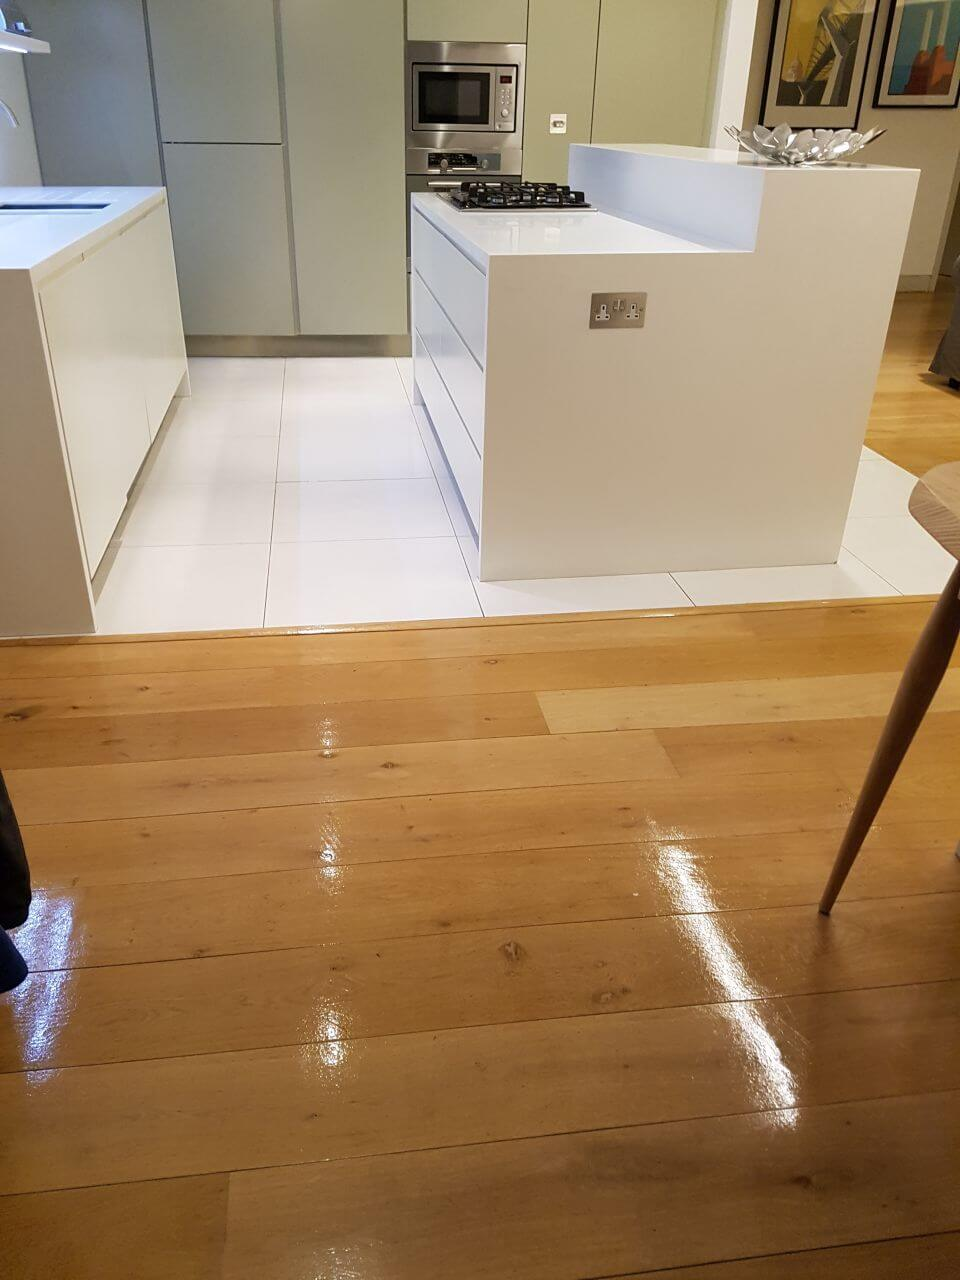 cleaning services Hampstead Gdn Suburb